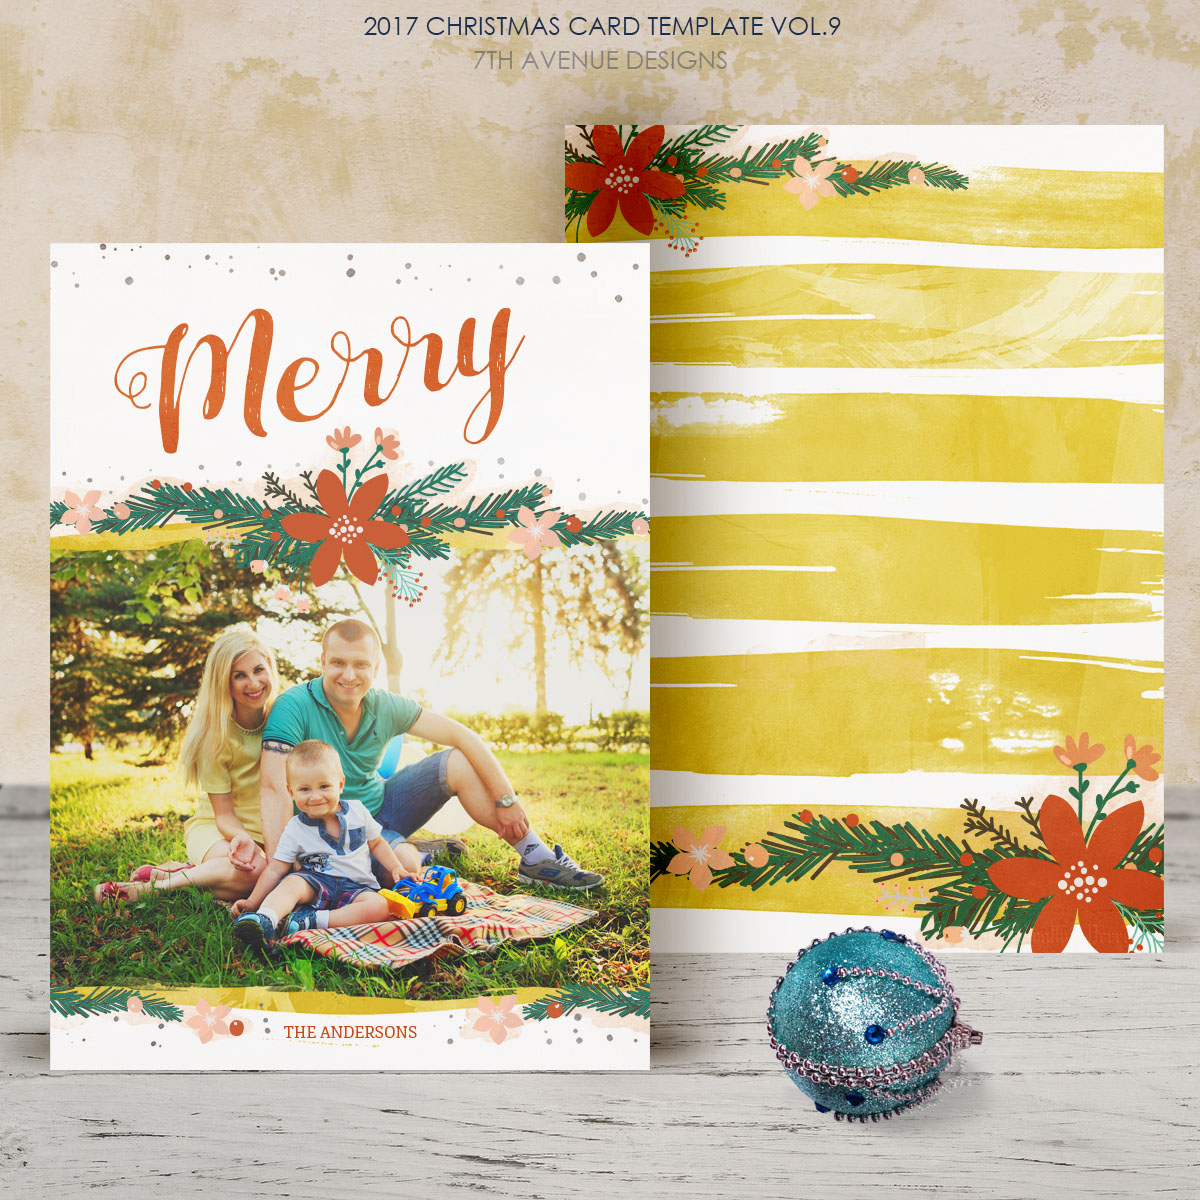 2017 Christmas Card Templates vol.9